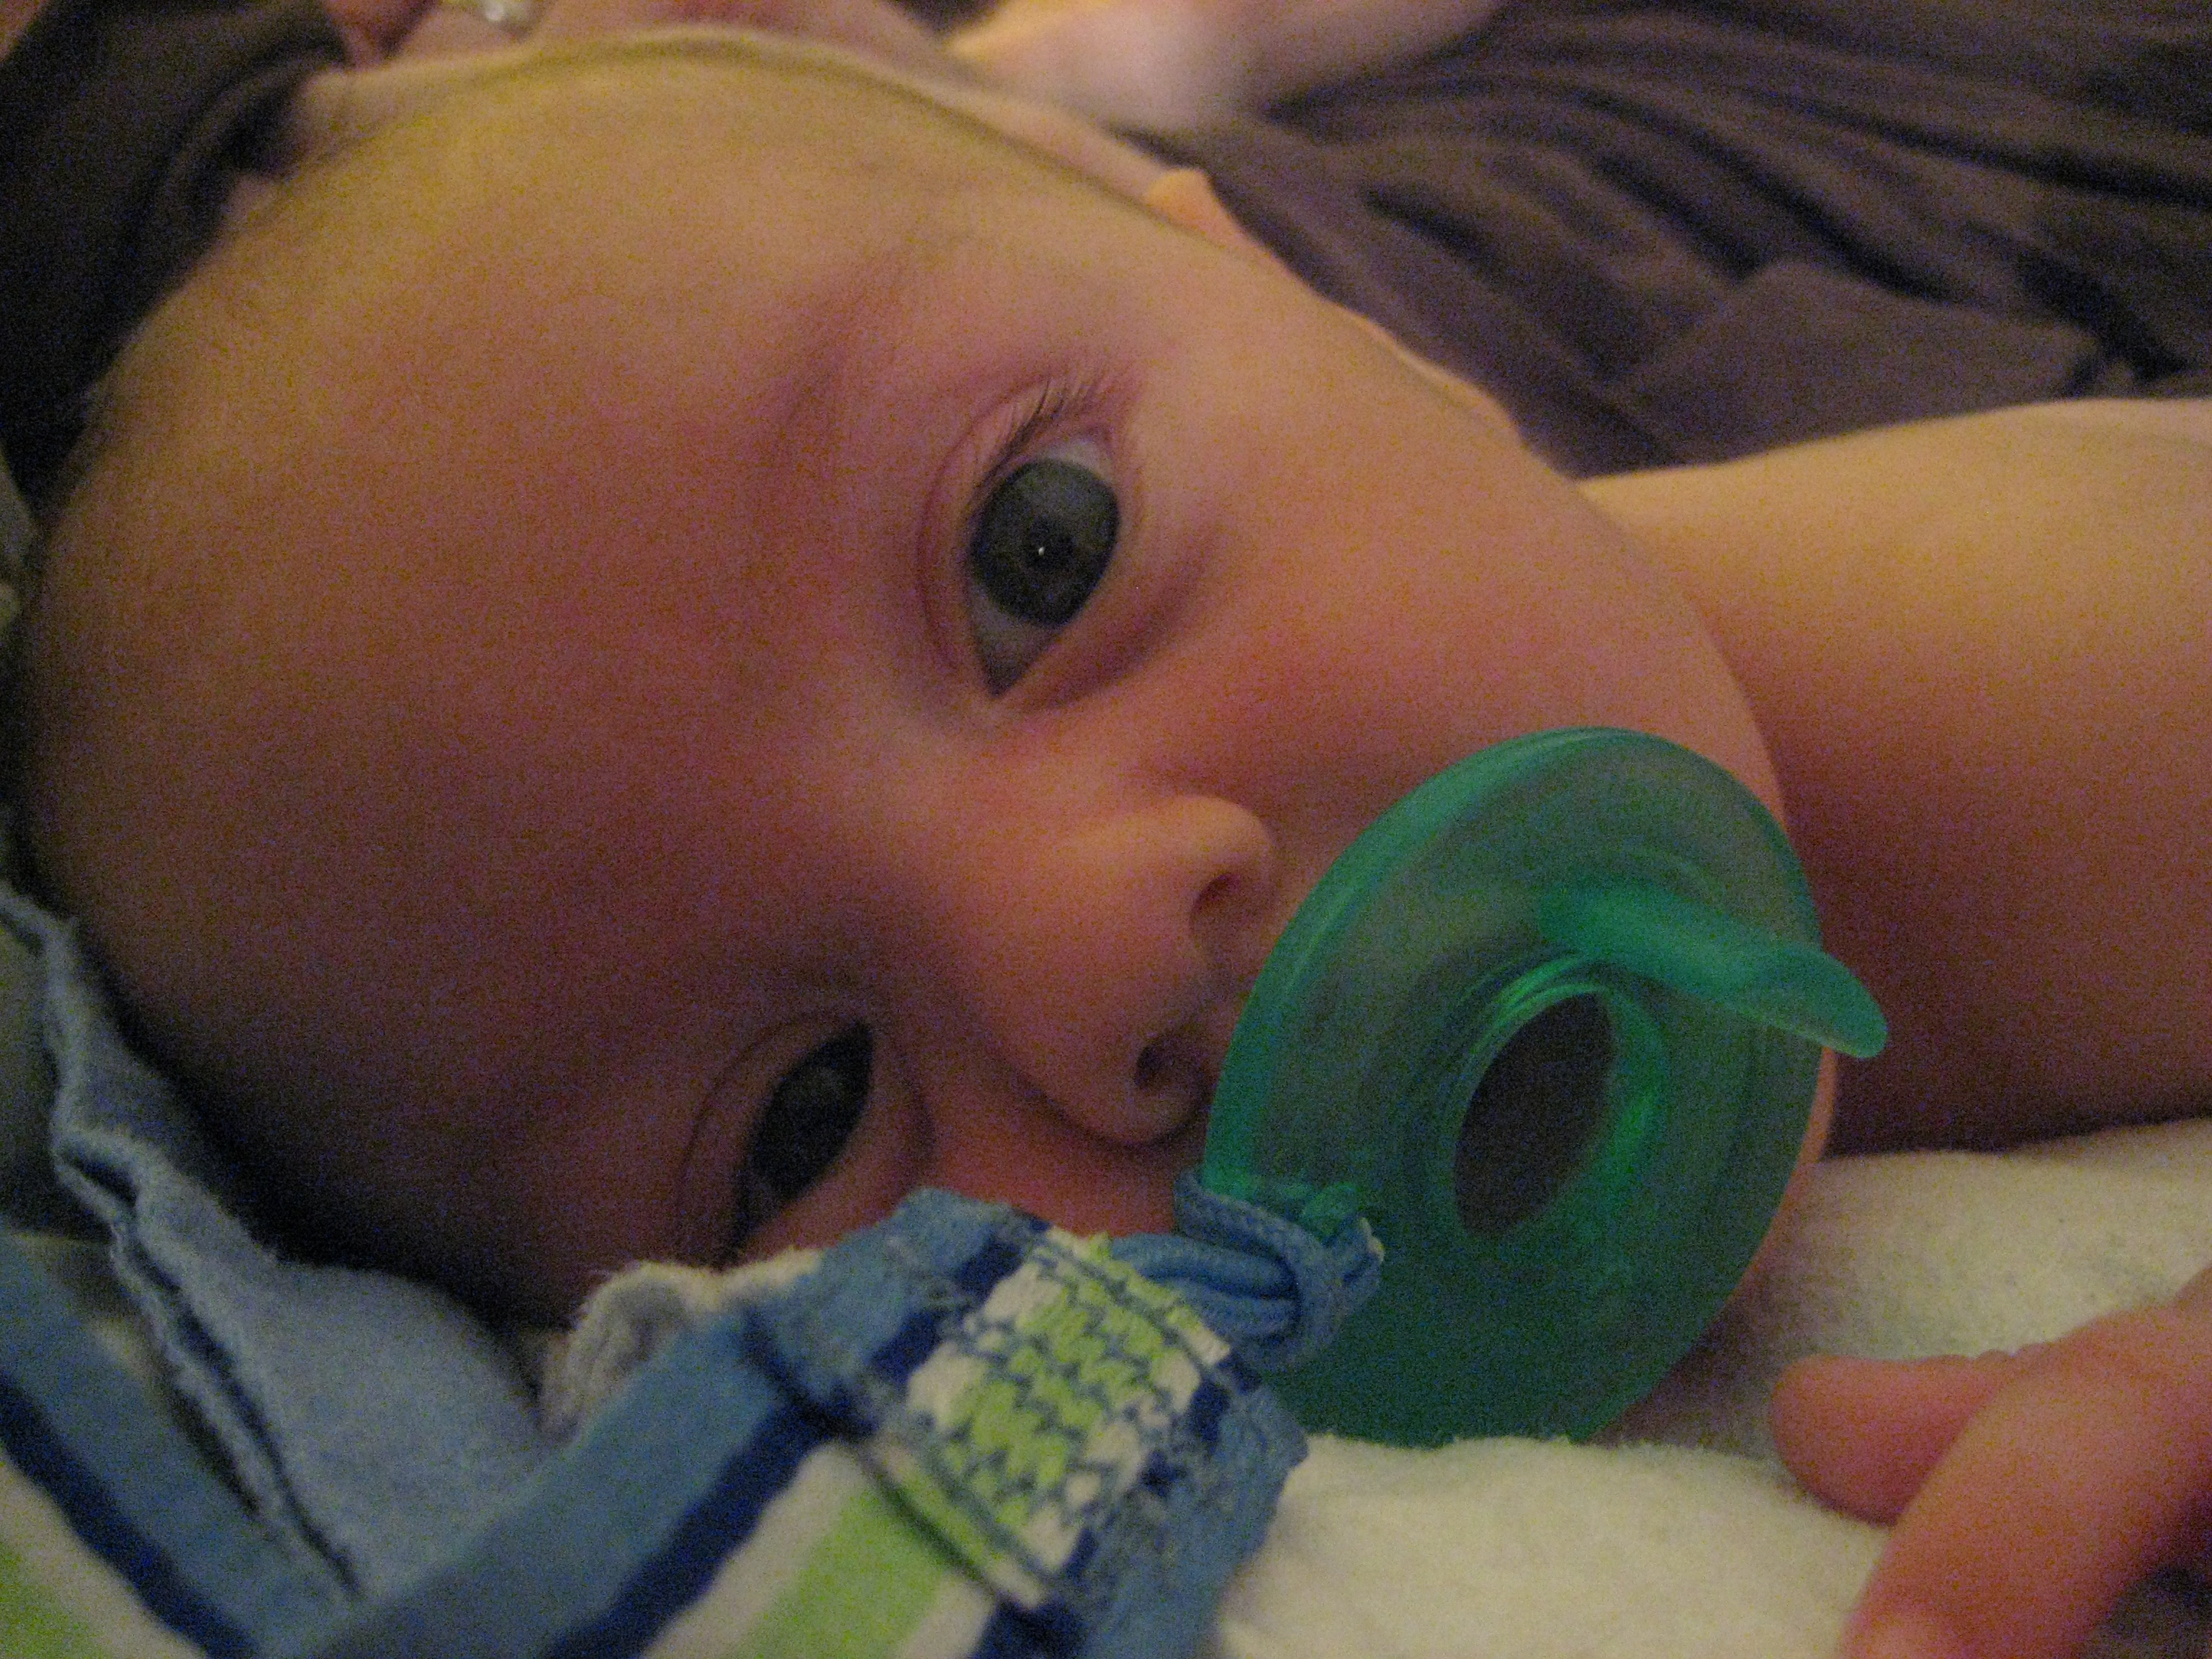 Amy at Anktangle's view at bedtime of baby Daniel at 2.5 months